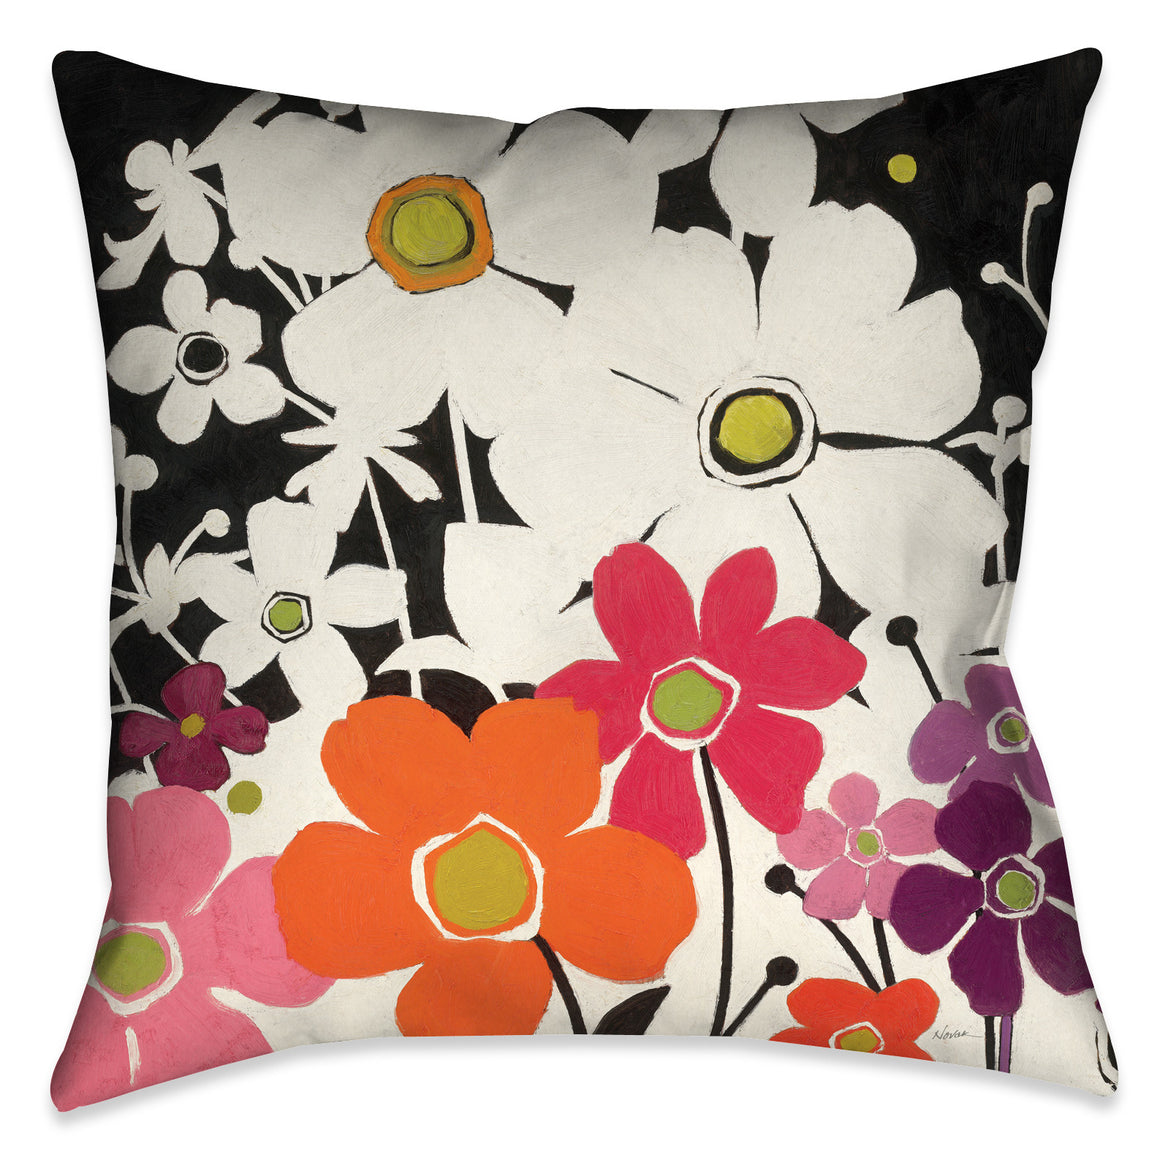 Flower Power Pillow I